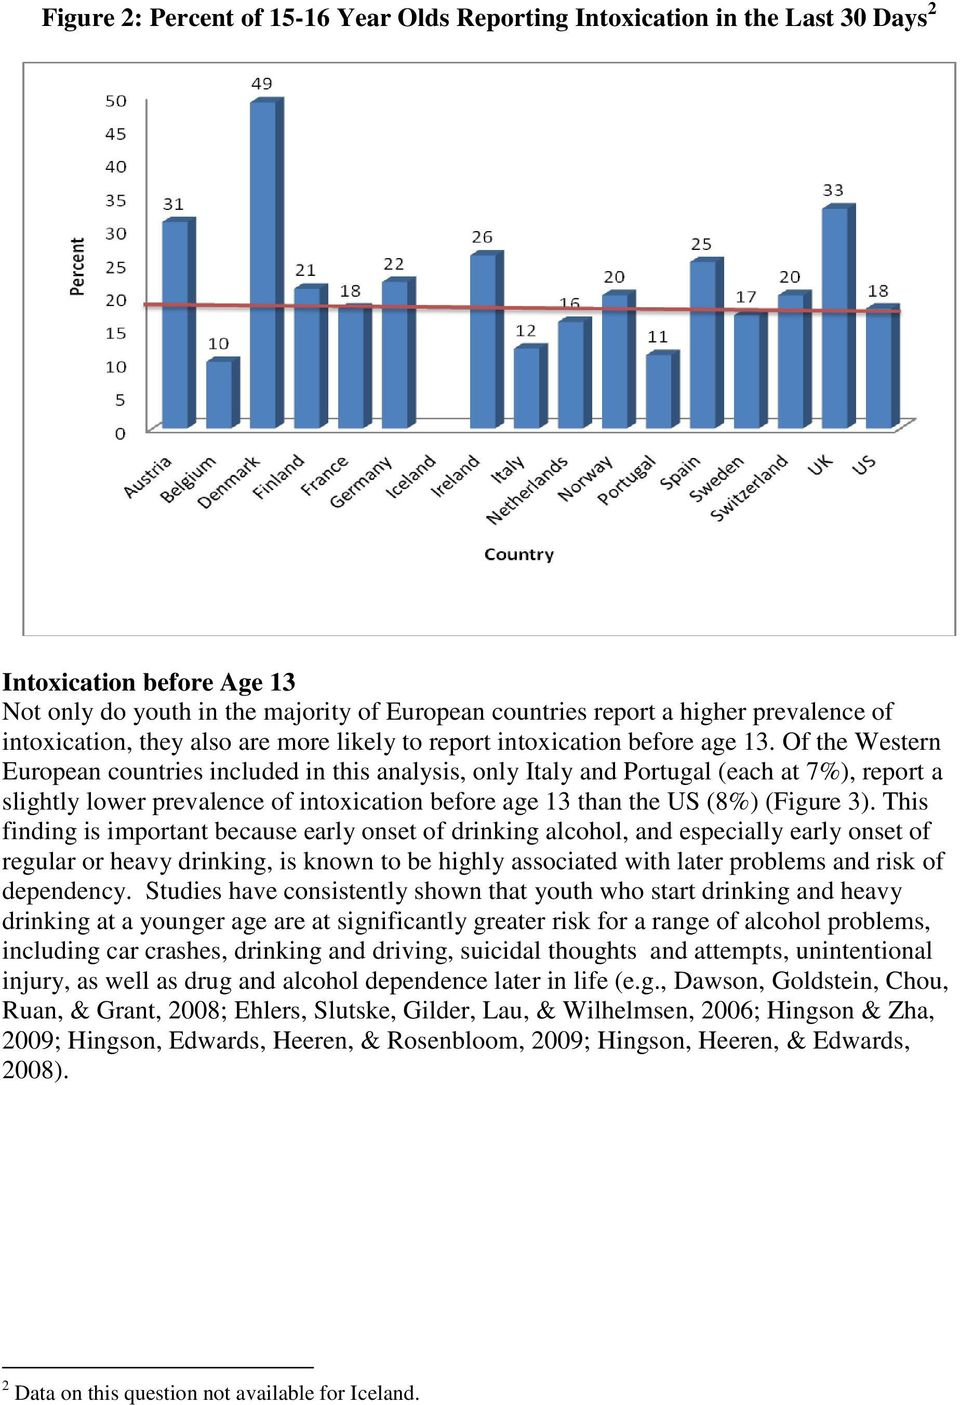 Of the Western European countries included in this analysis, only Italy and Portugal (each at 7%), report a slightly lower prevalence of intoxication before age 13 than the US (8%) (Figure 3).